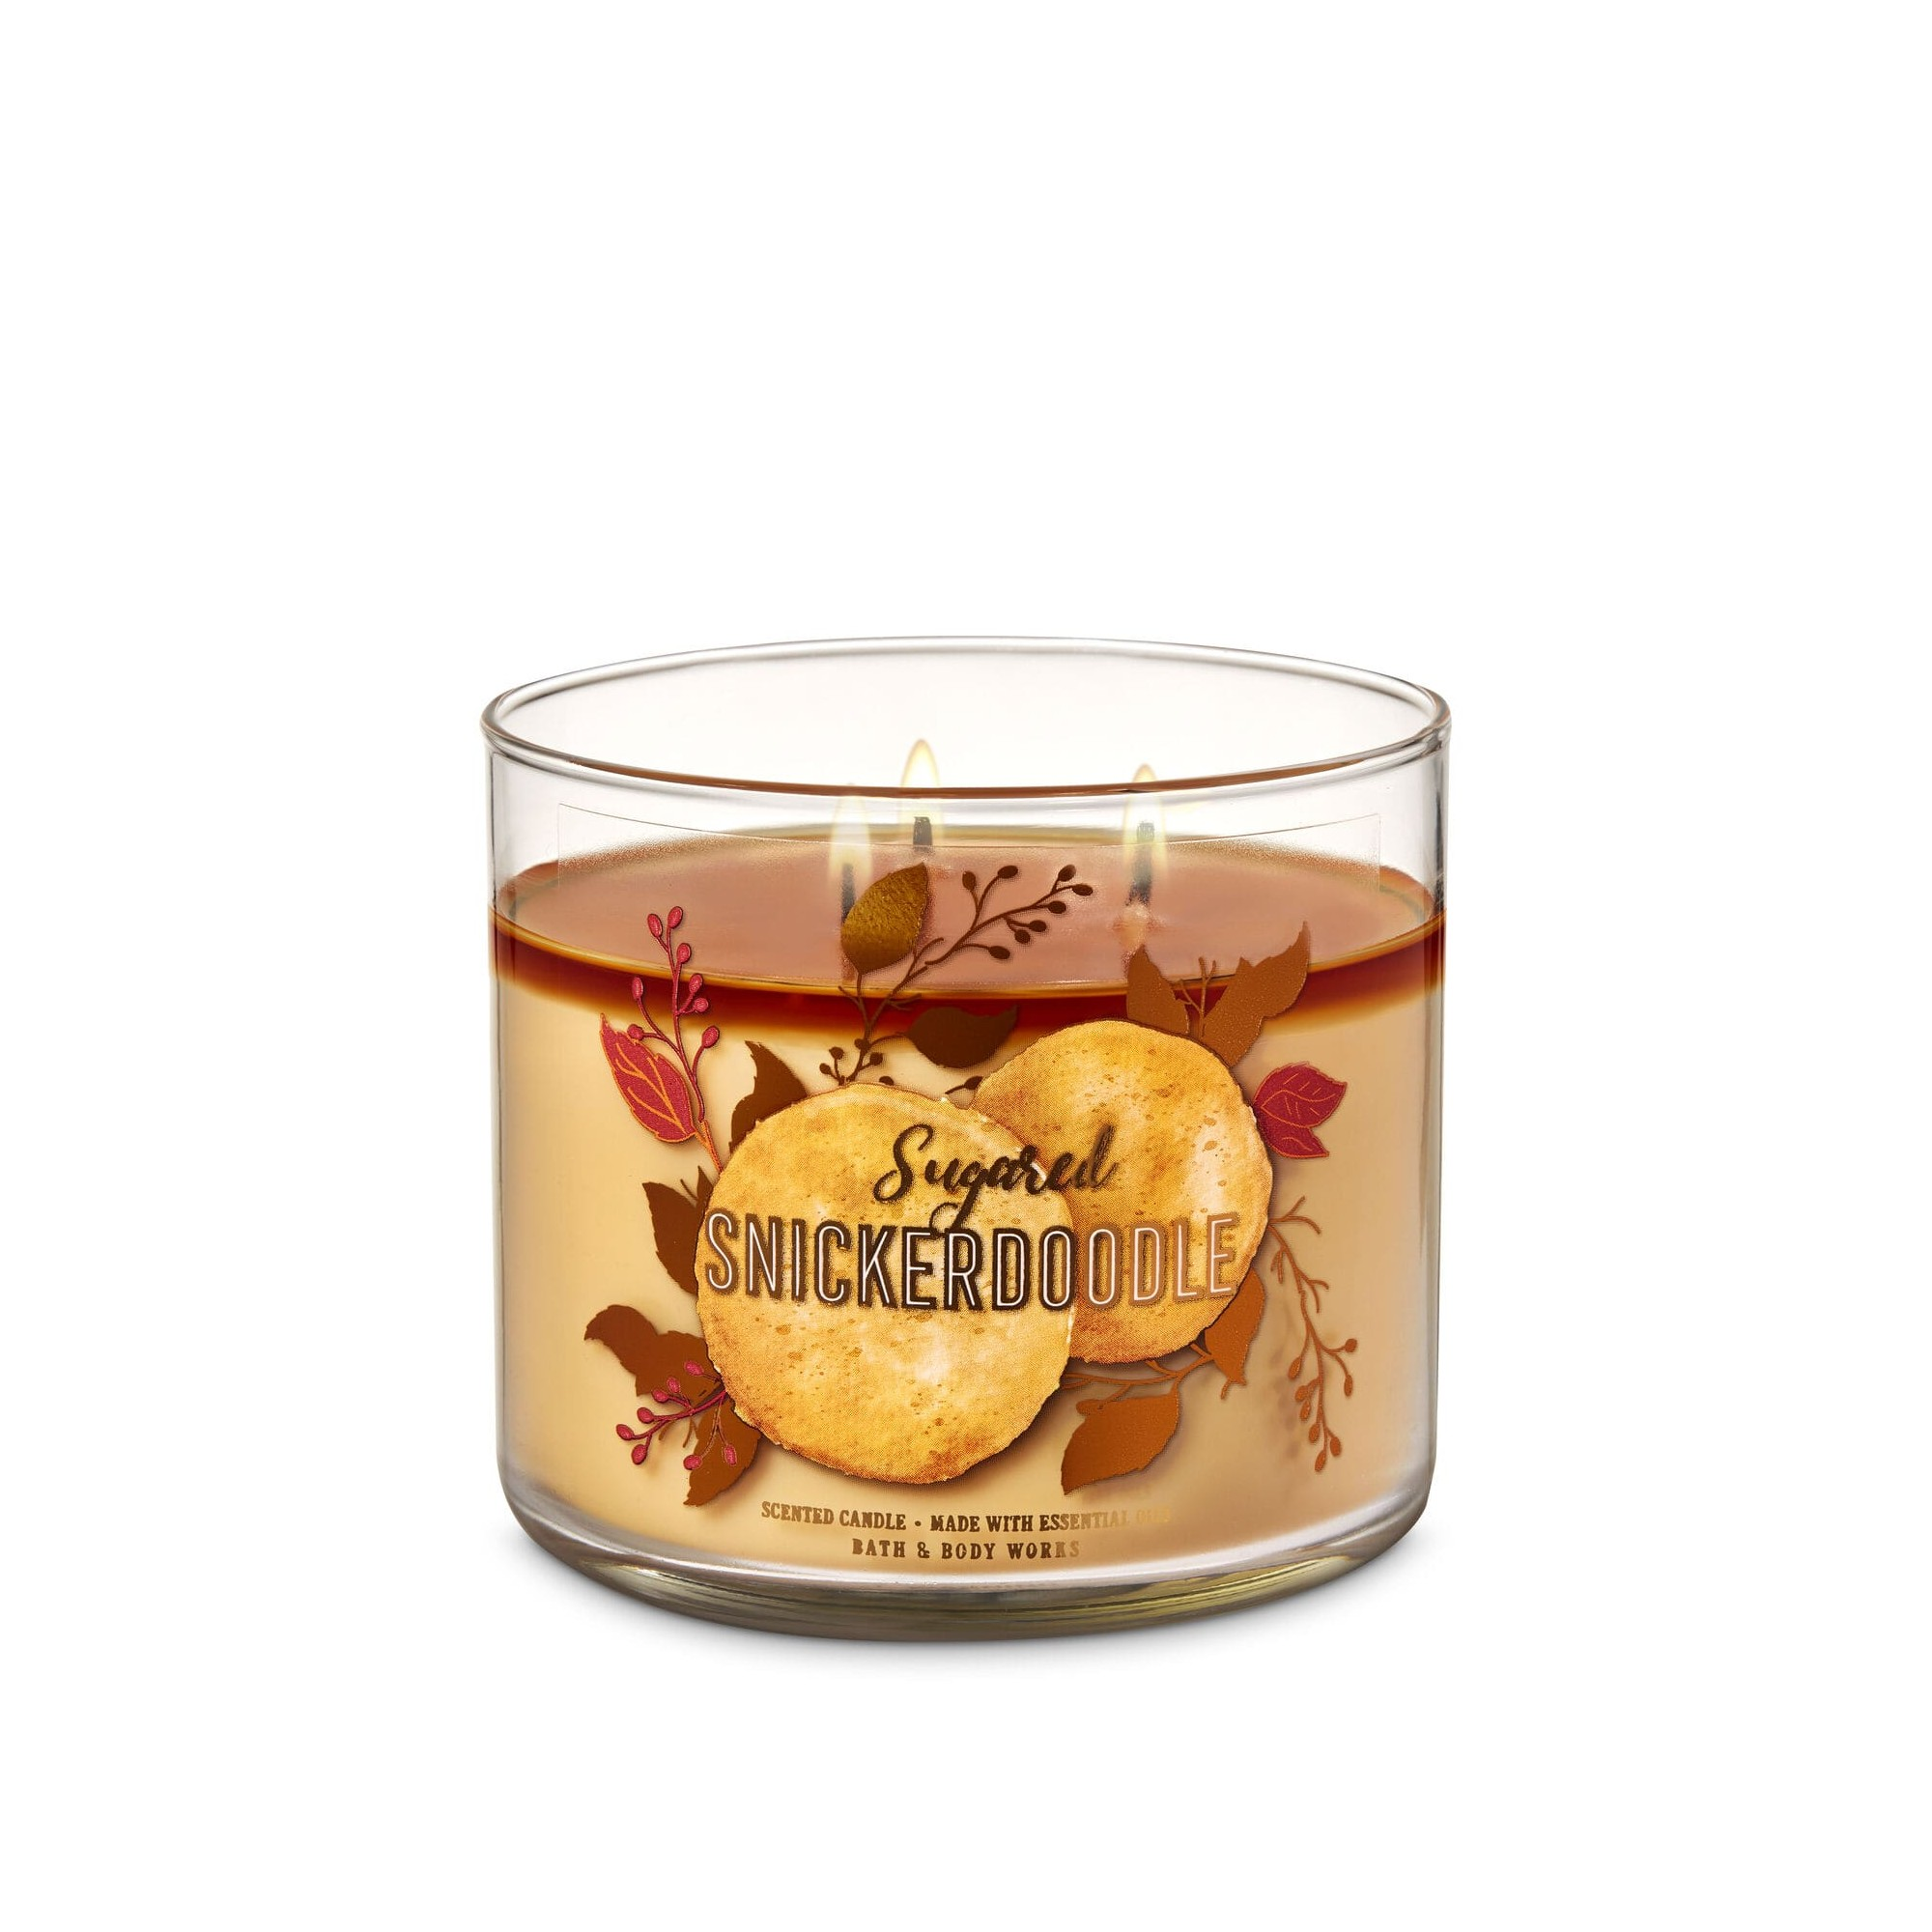 Bath & Body Works Sugared Snickerdoodle 3 Wick Scented Candle